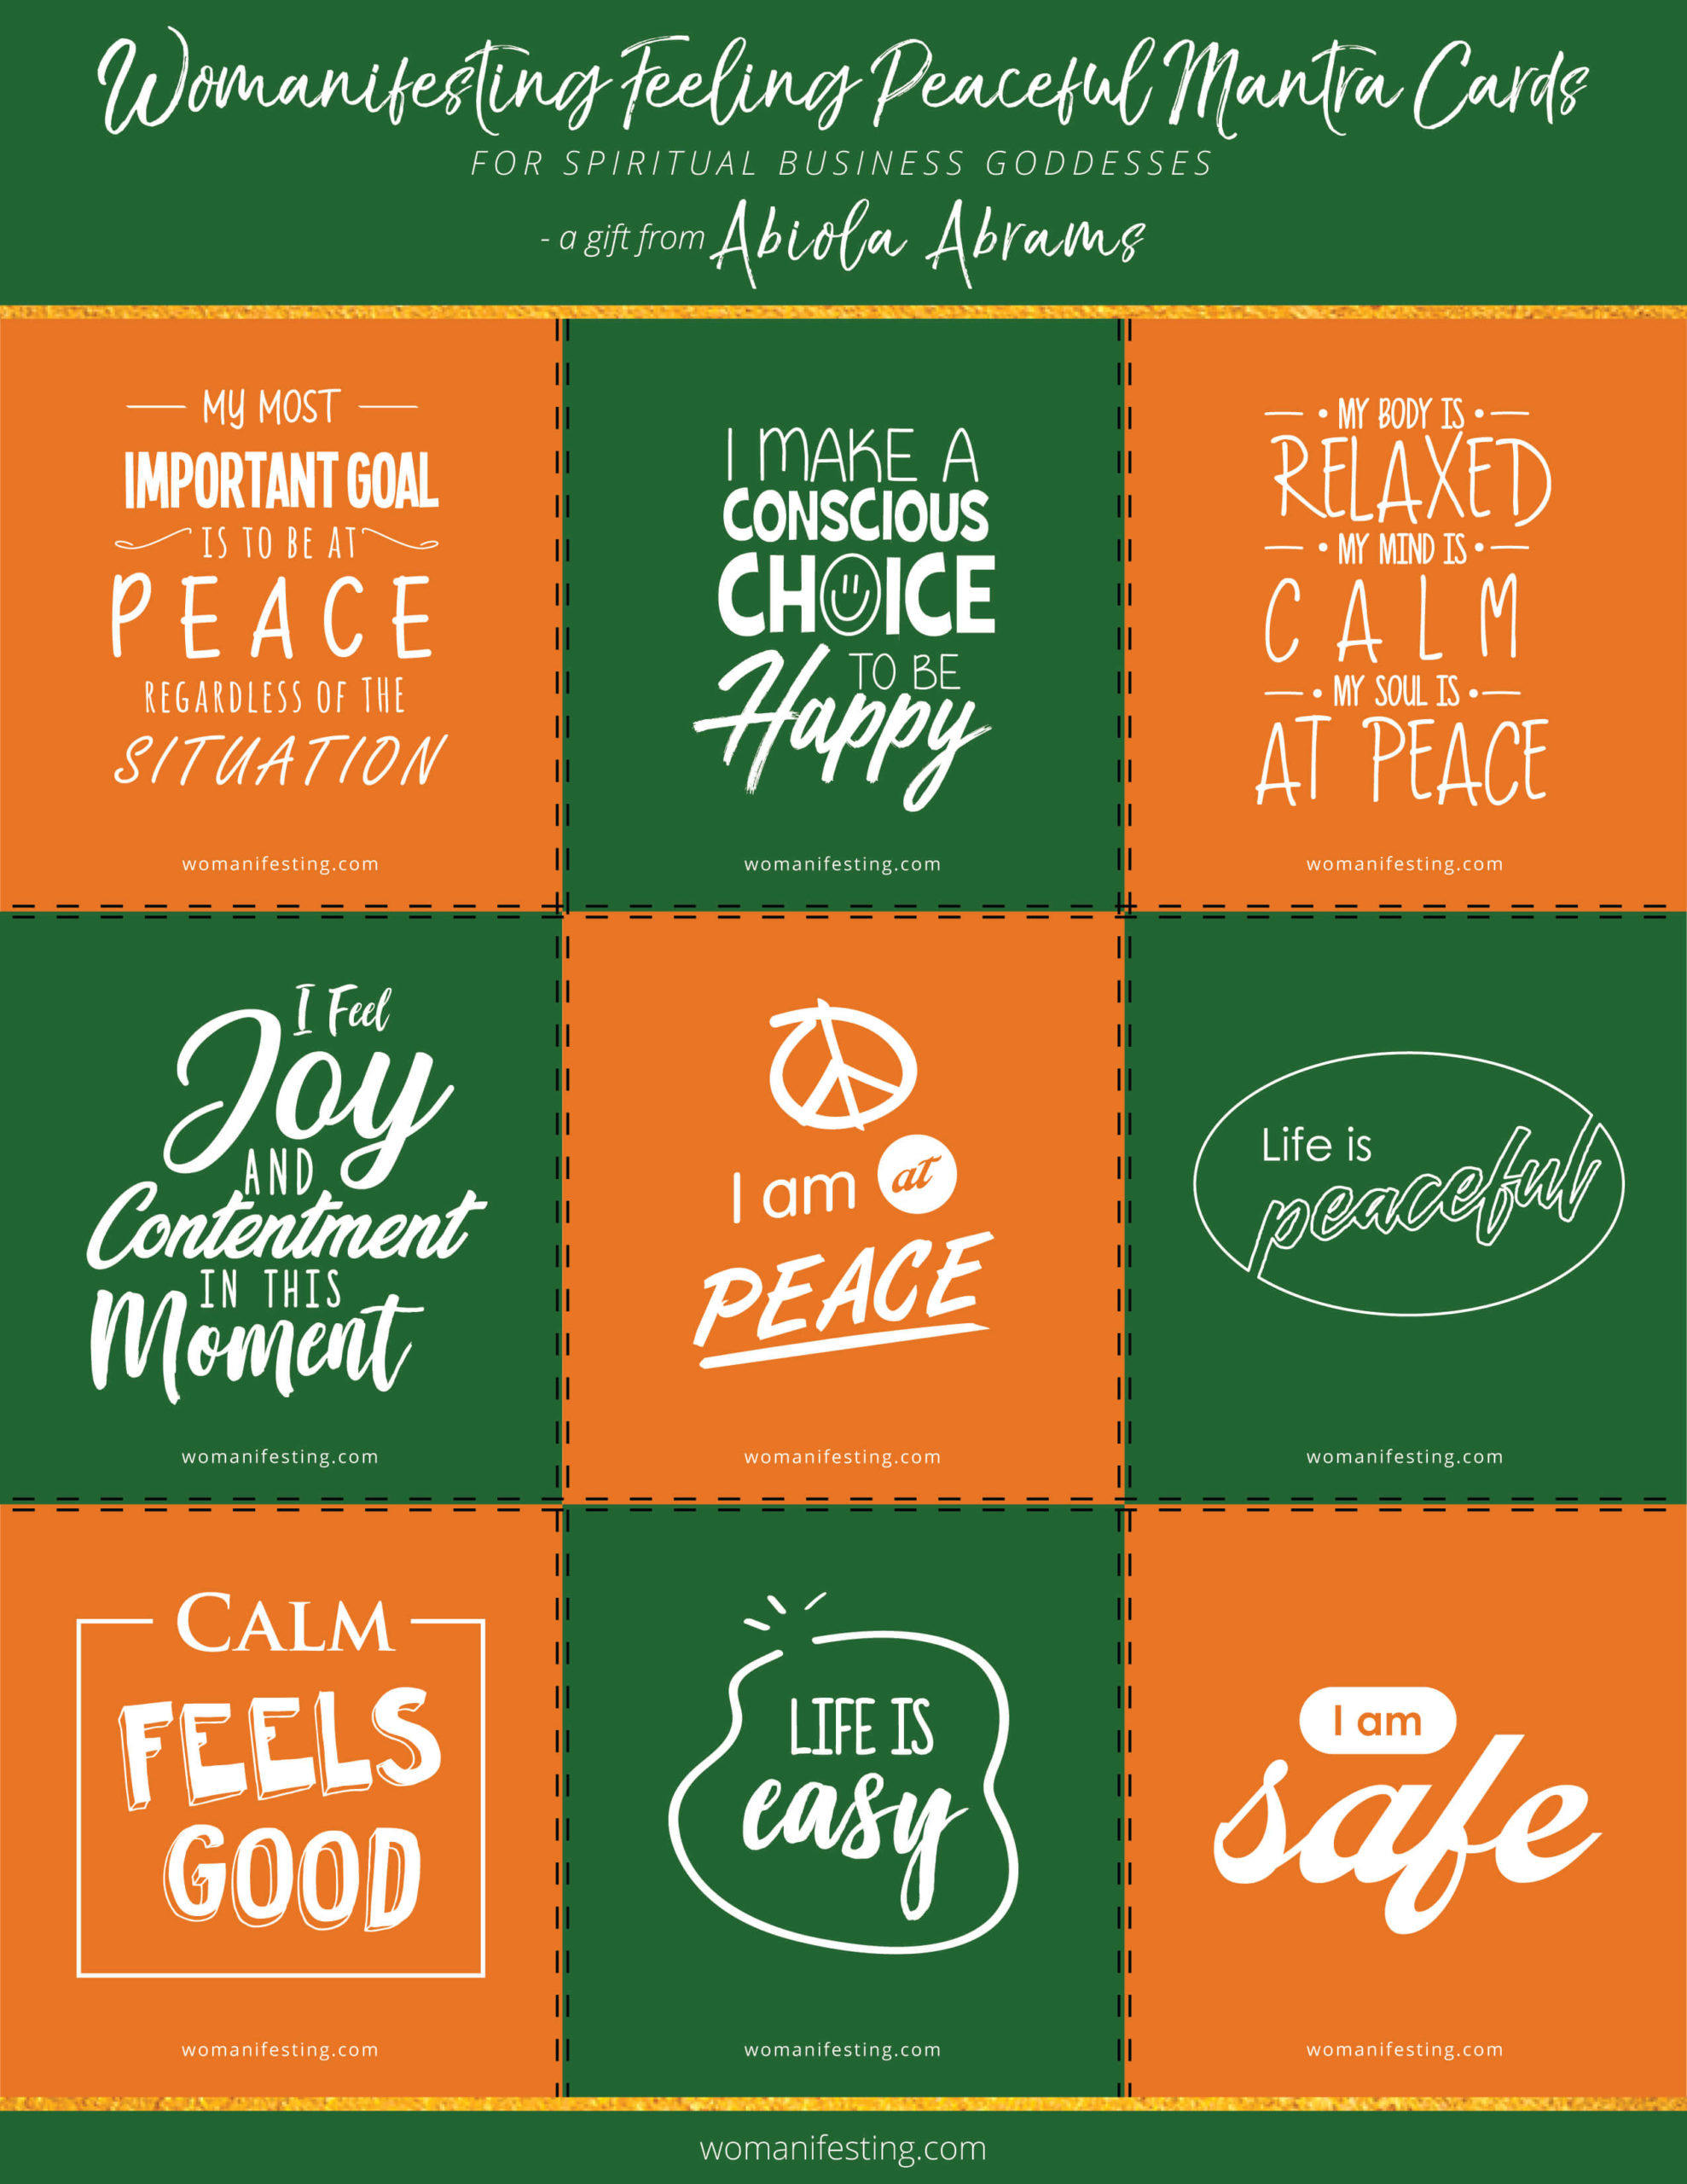 Free Peace Mantra Affirmation Cards [Printable Inspiration]